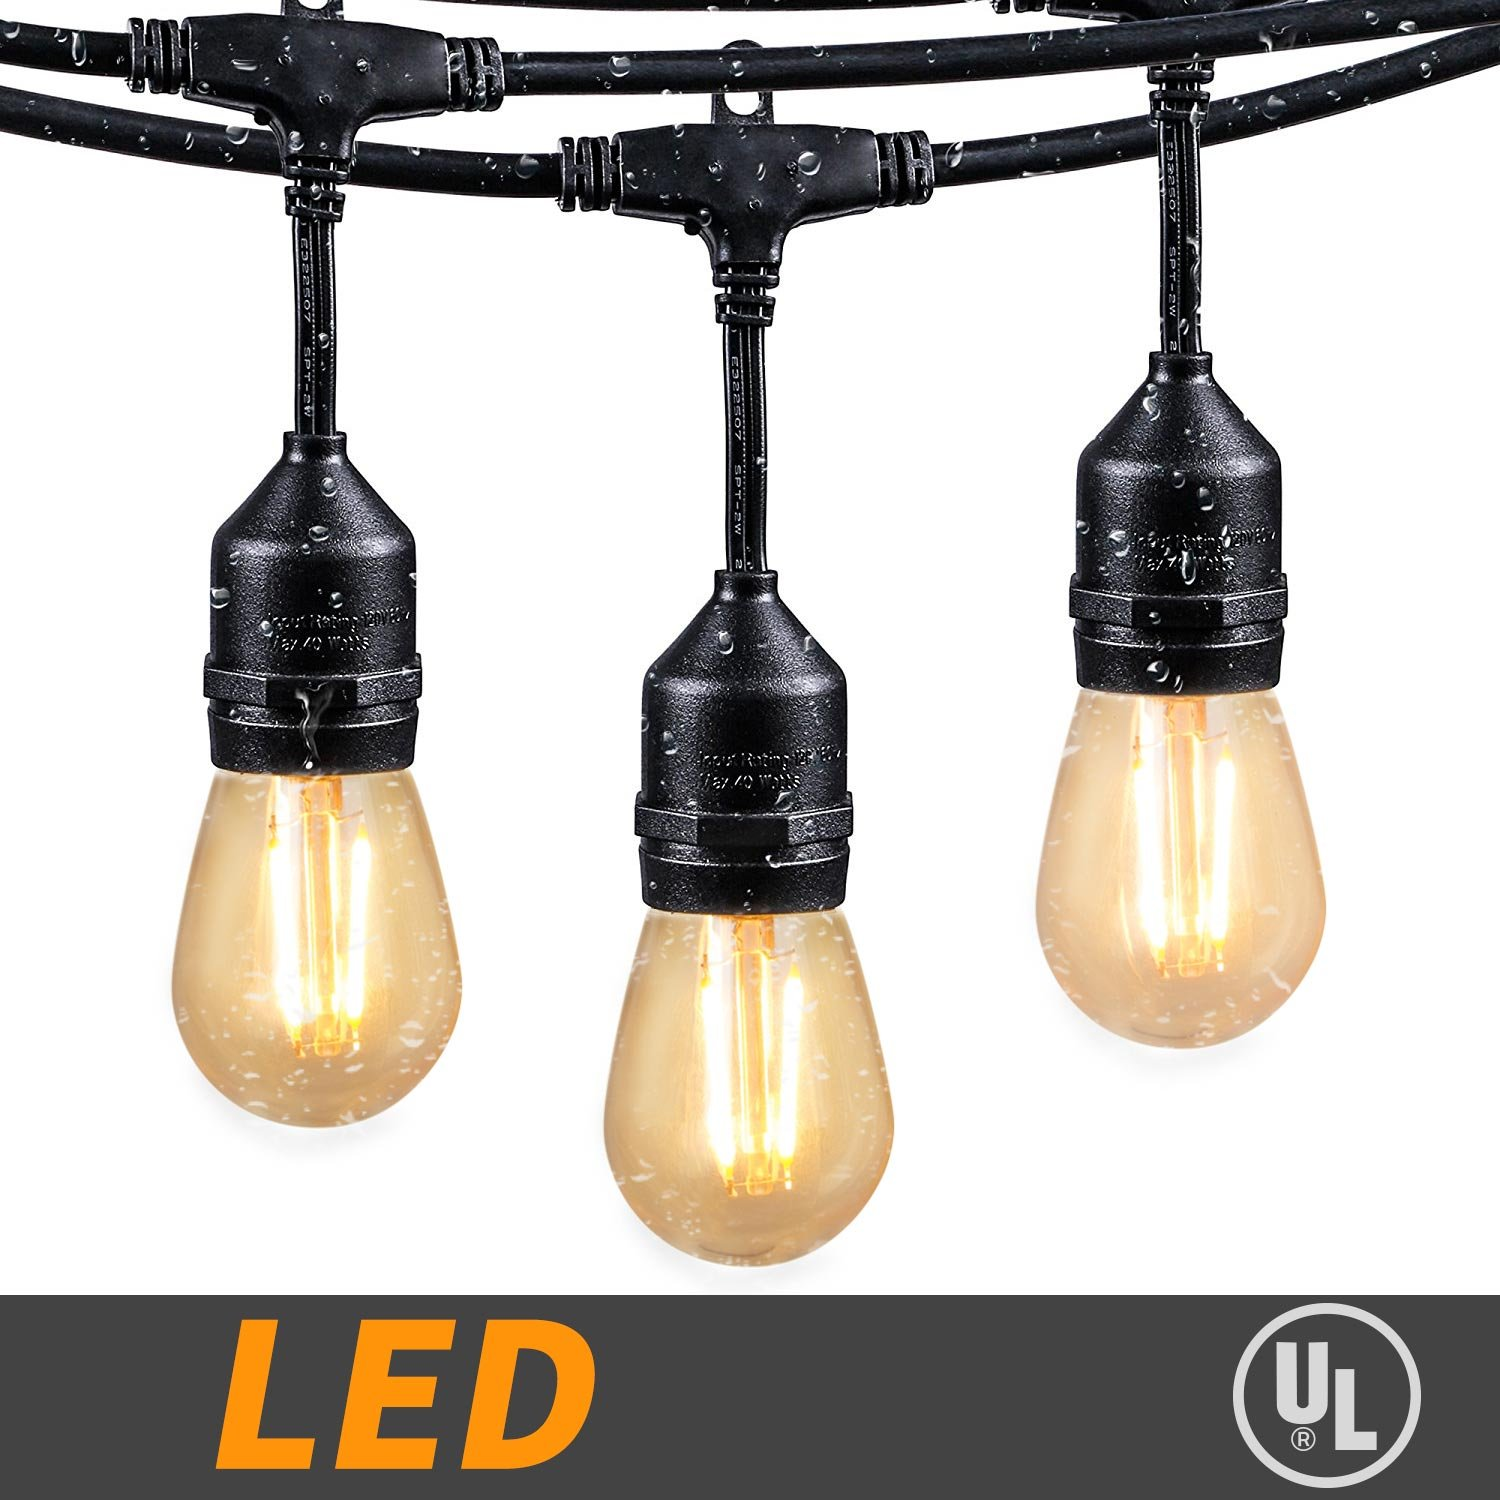 48Ft LED Outdoor String Lights with 15 Dimmable S14 Edison bulbs, Weatherproof Commercial Grade Hanging Patio lights for Deck Backyard Bistro Cafe Pergola Gazebo Wedding Garden Vintage Light Decor